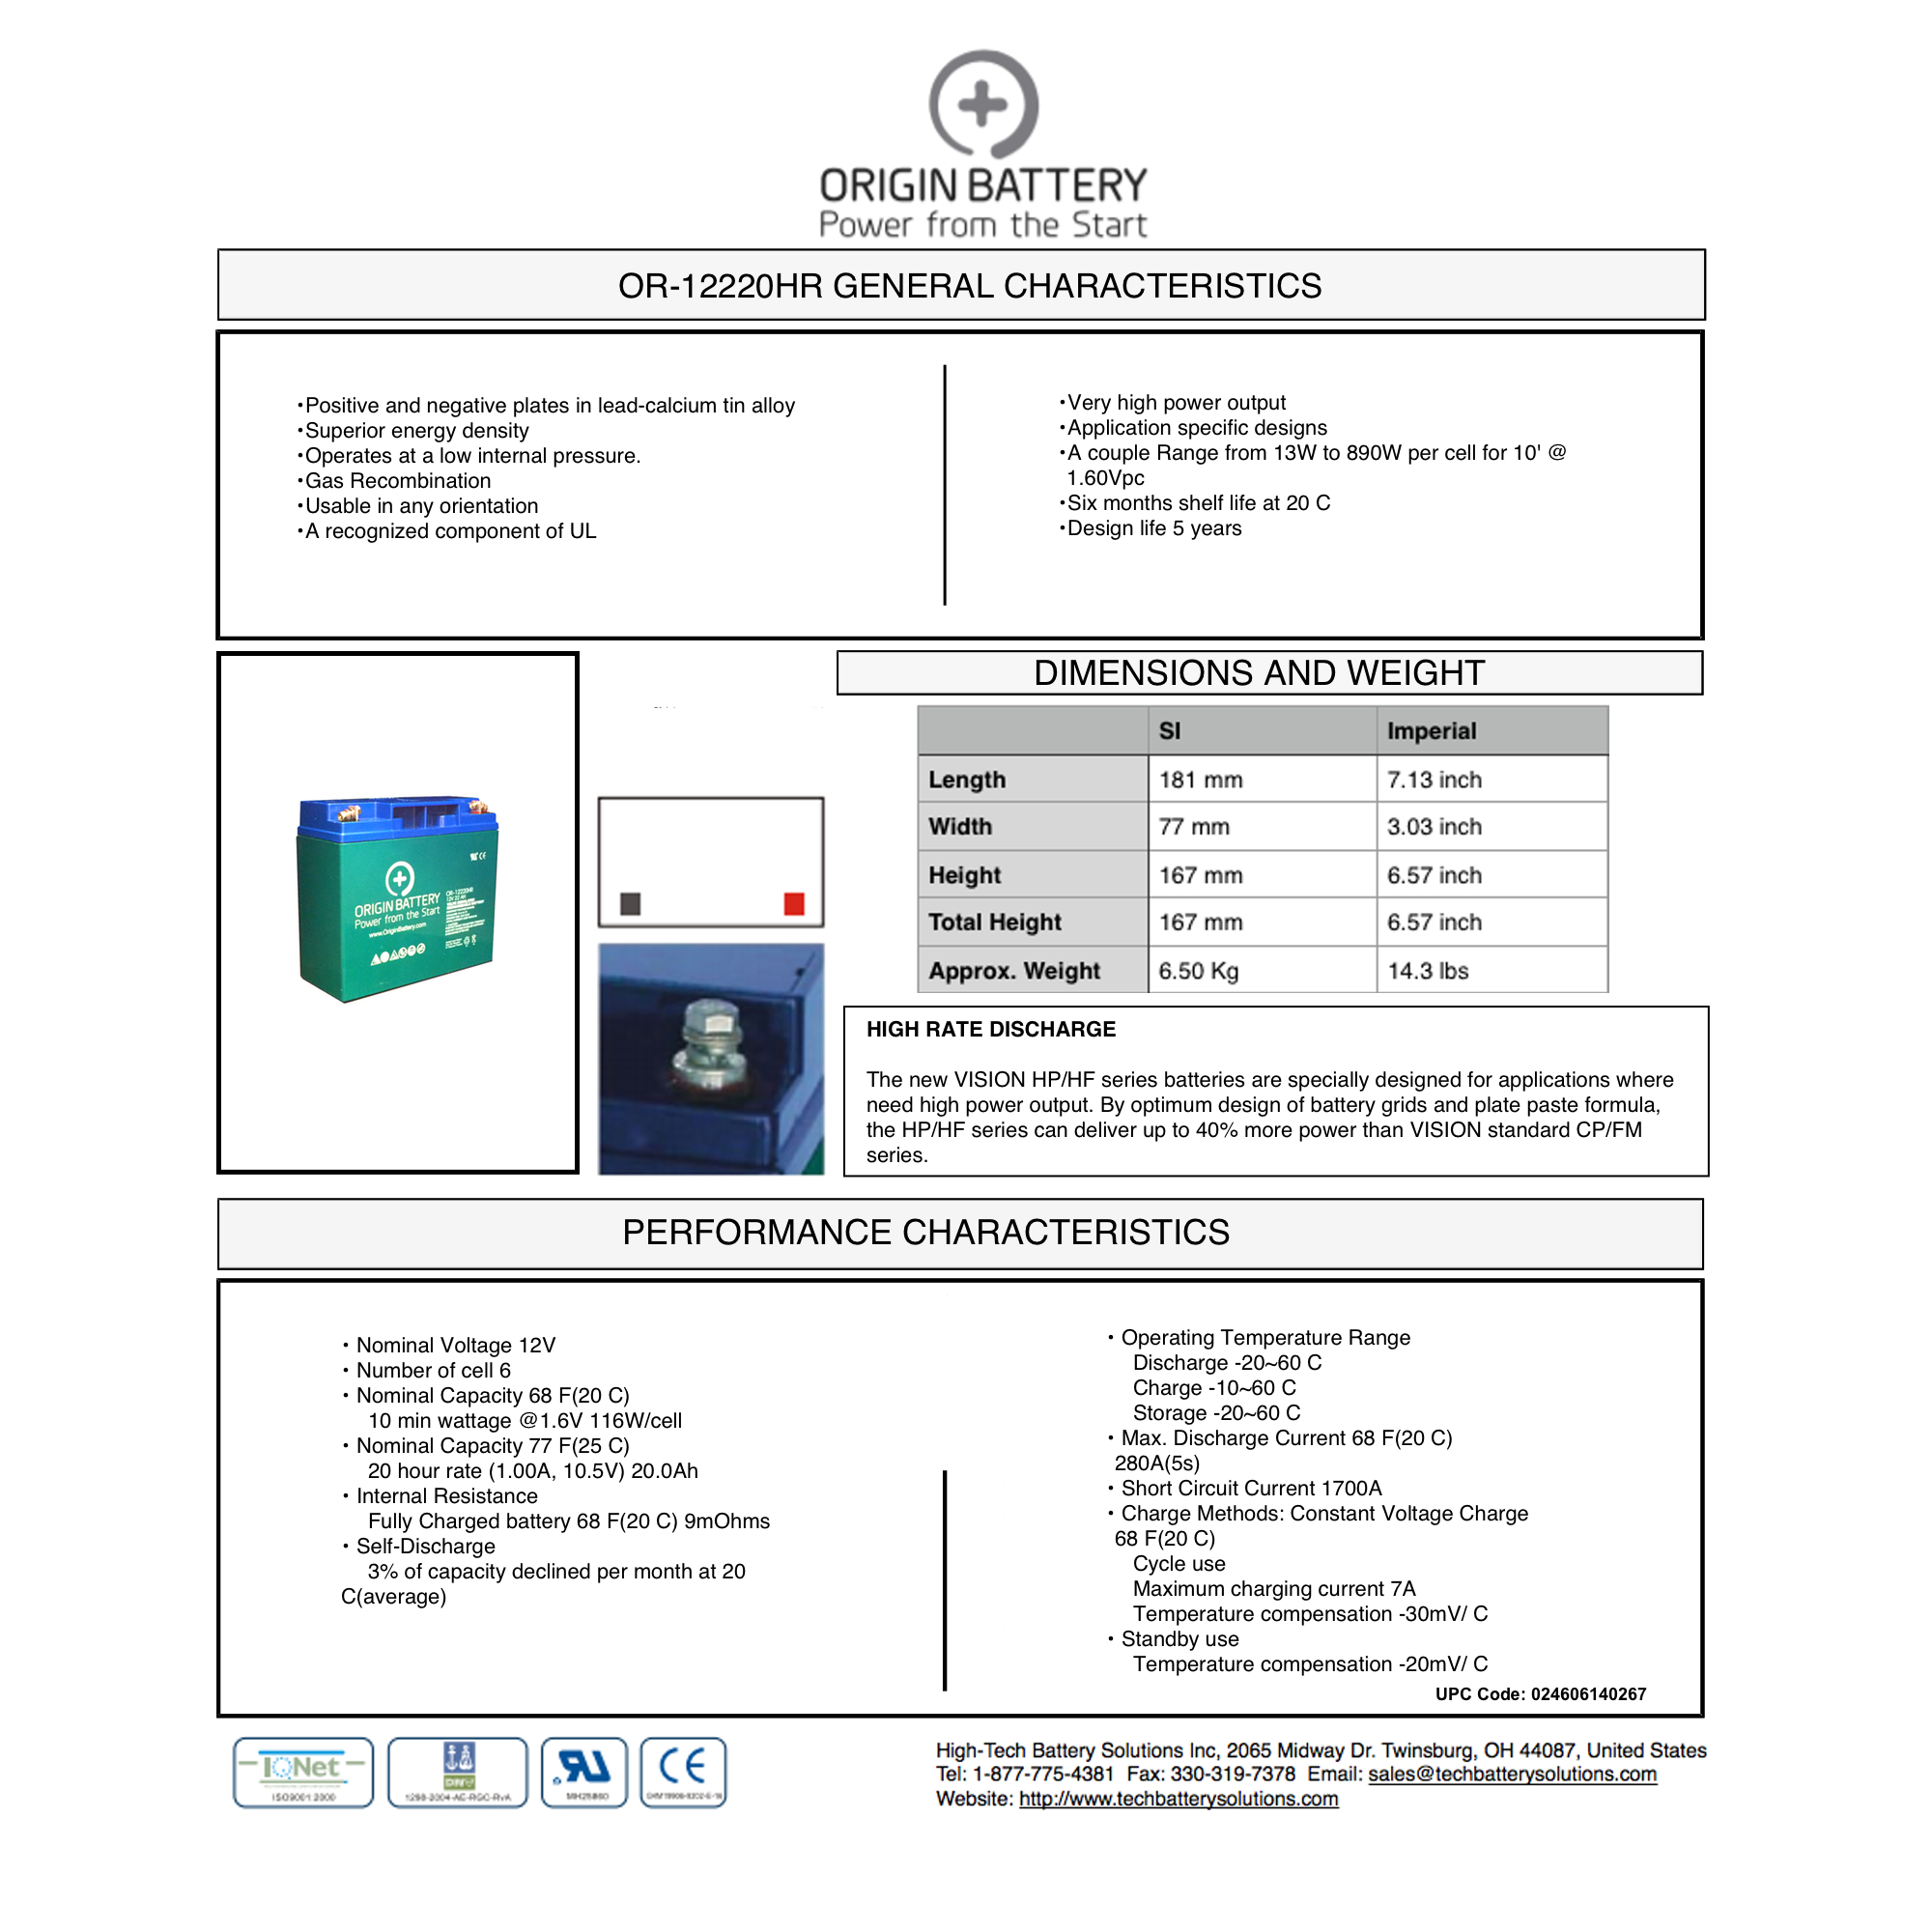 OR-12220HR Specs